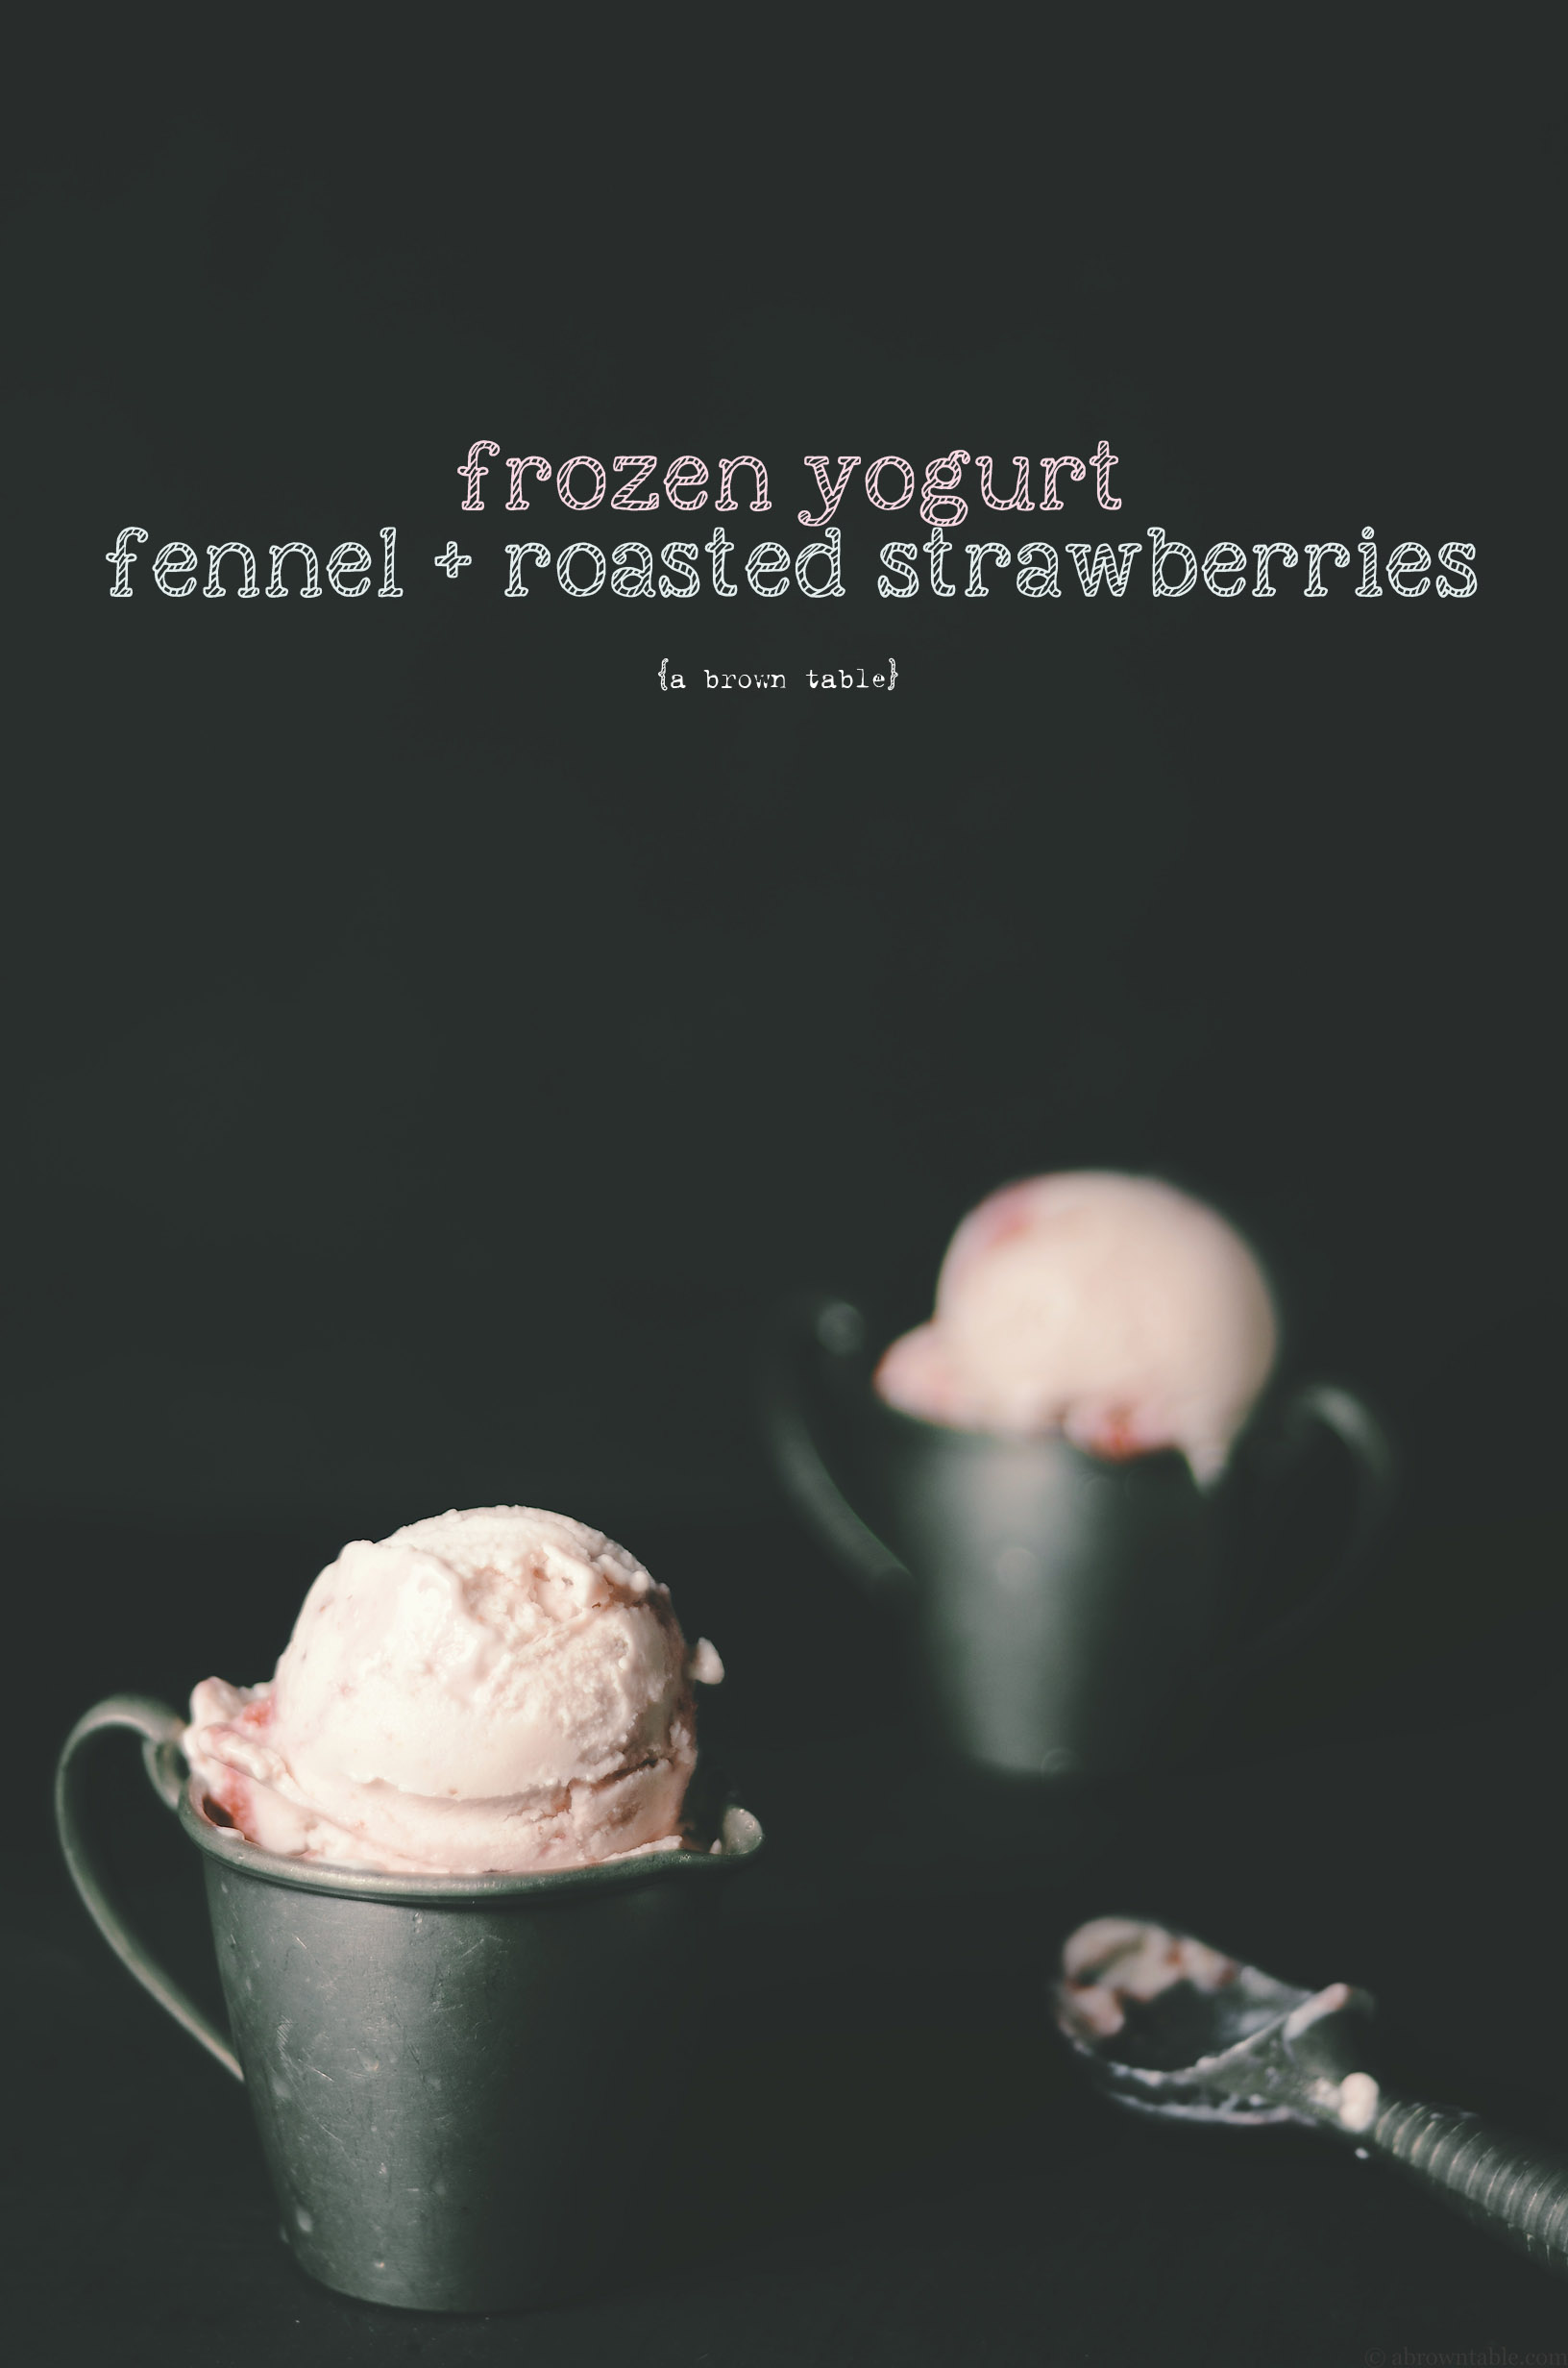 fennel strawberries frozen yogurt